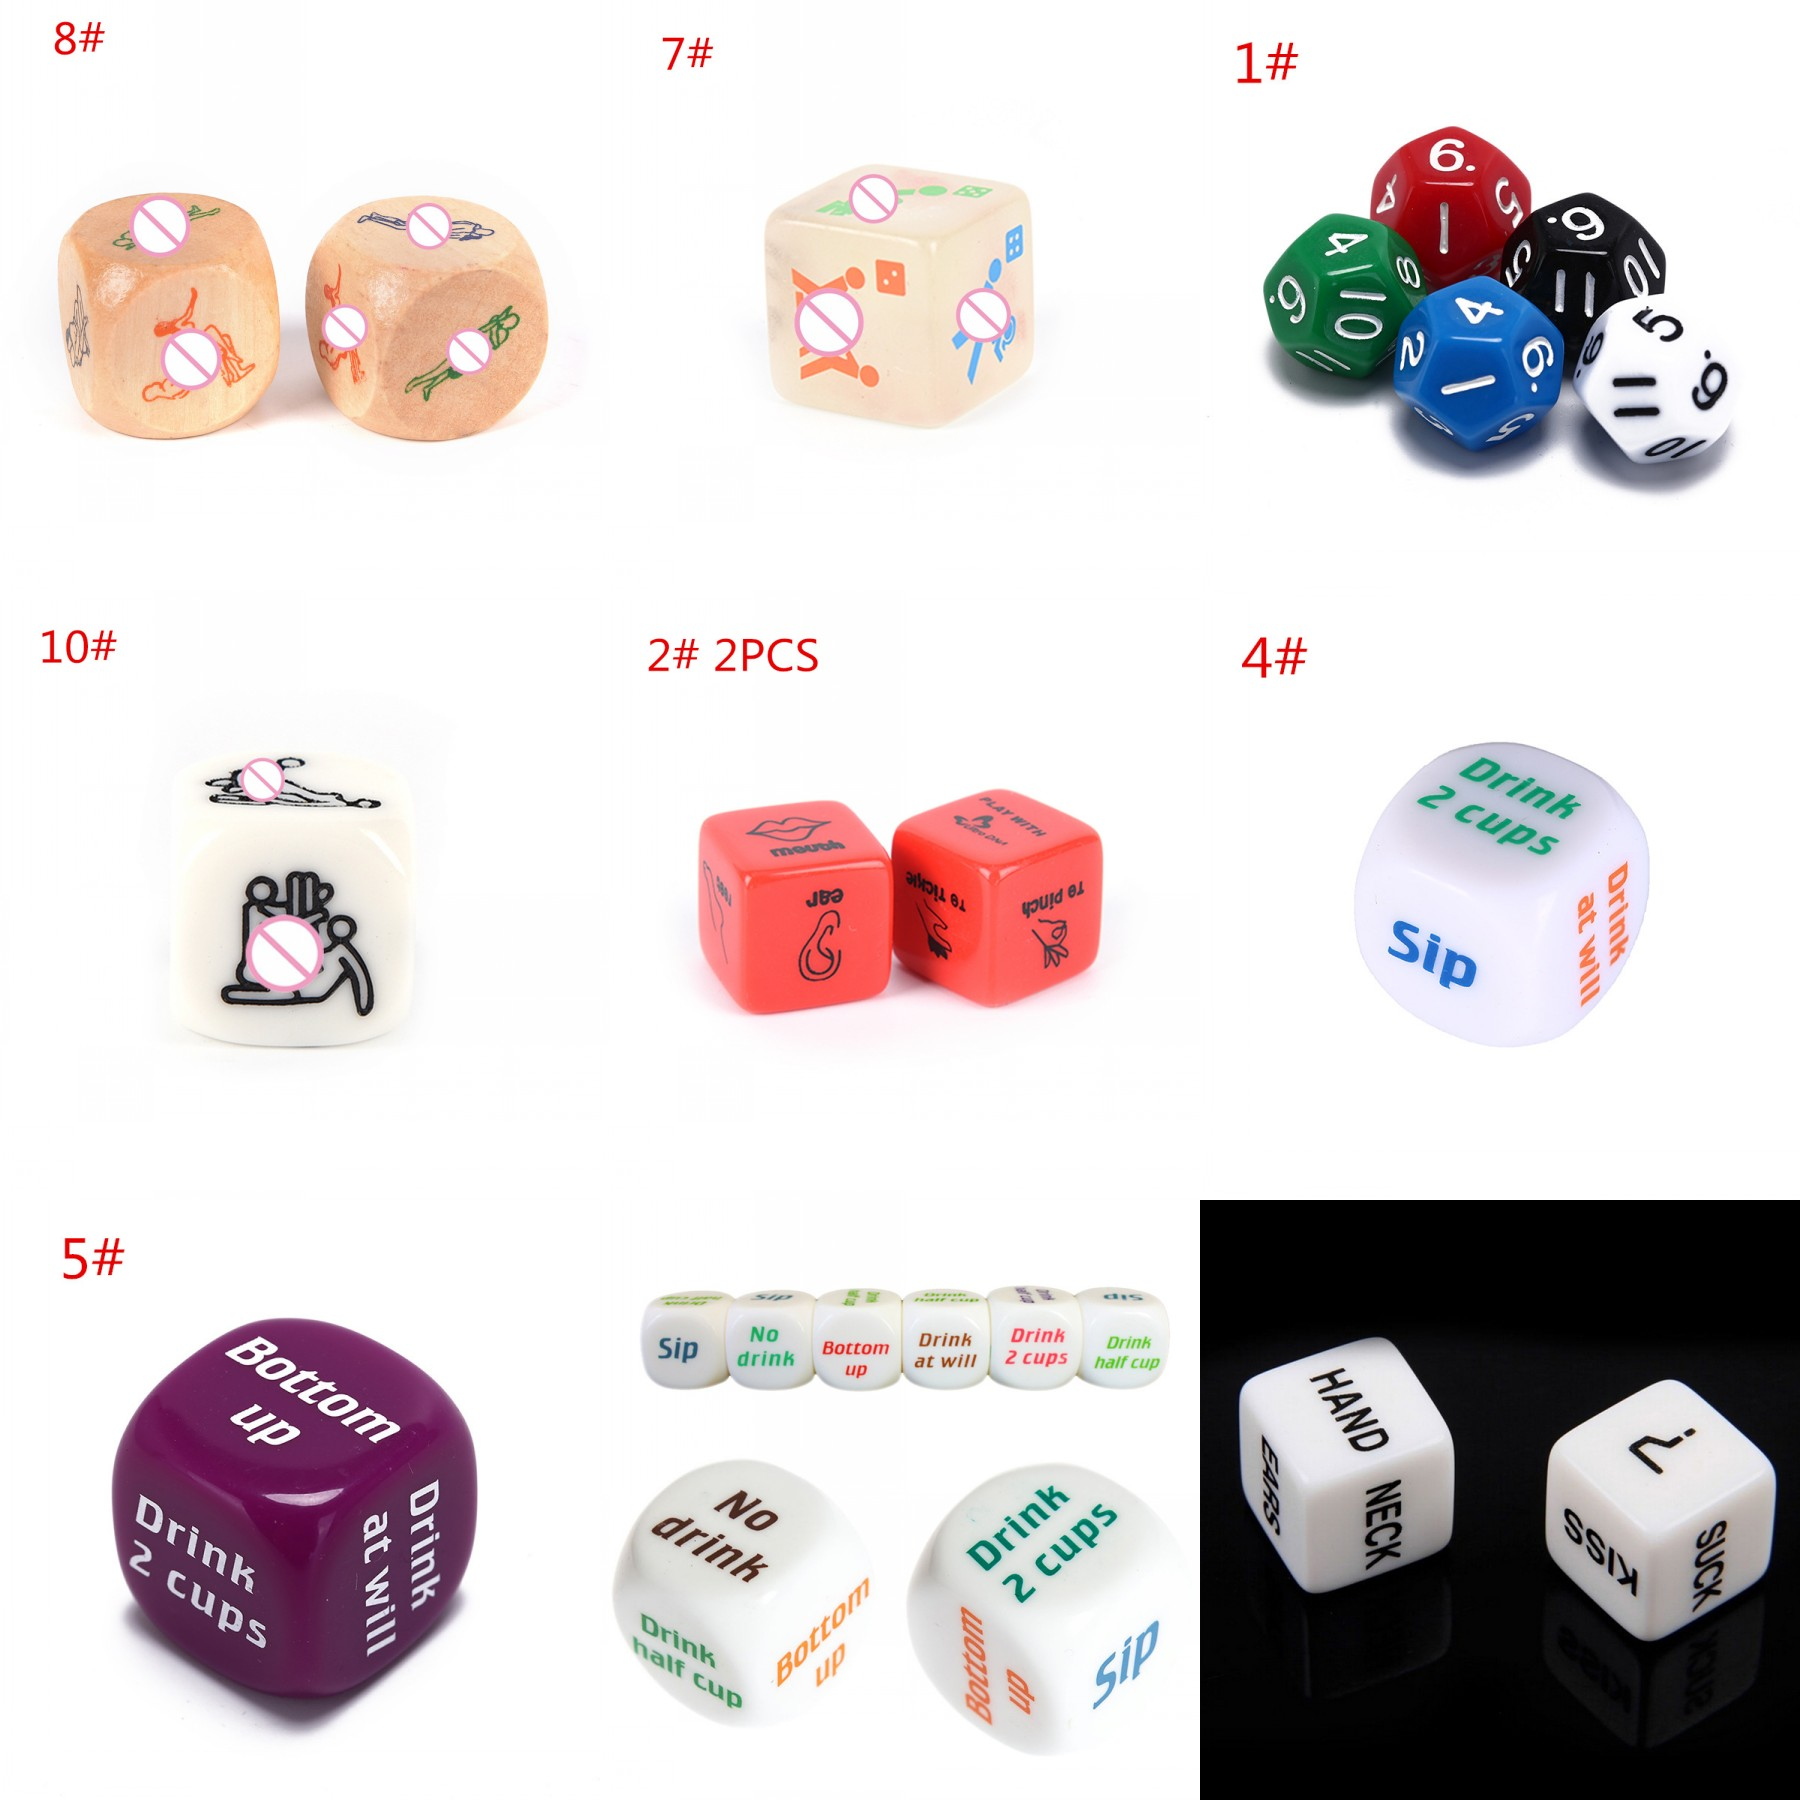 11 Style Sexy 12 Sided Dice Die Positions Romance Love Humour Gambling Adult Games Erotic Craps Pipe Sex Toys For Couples